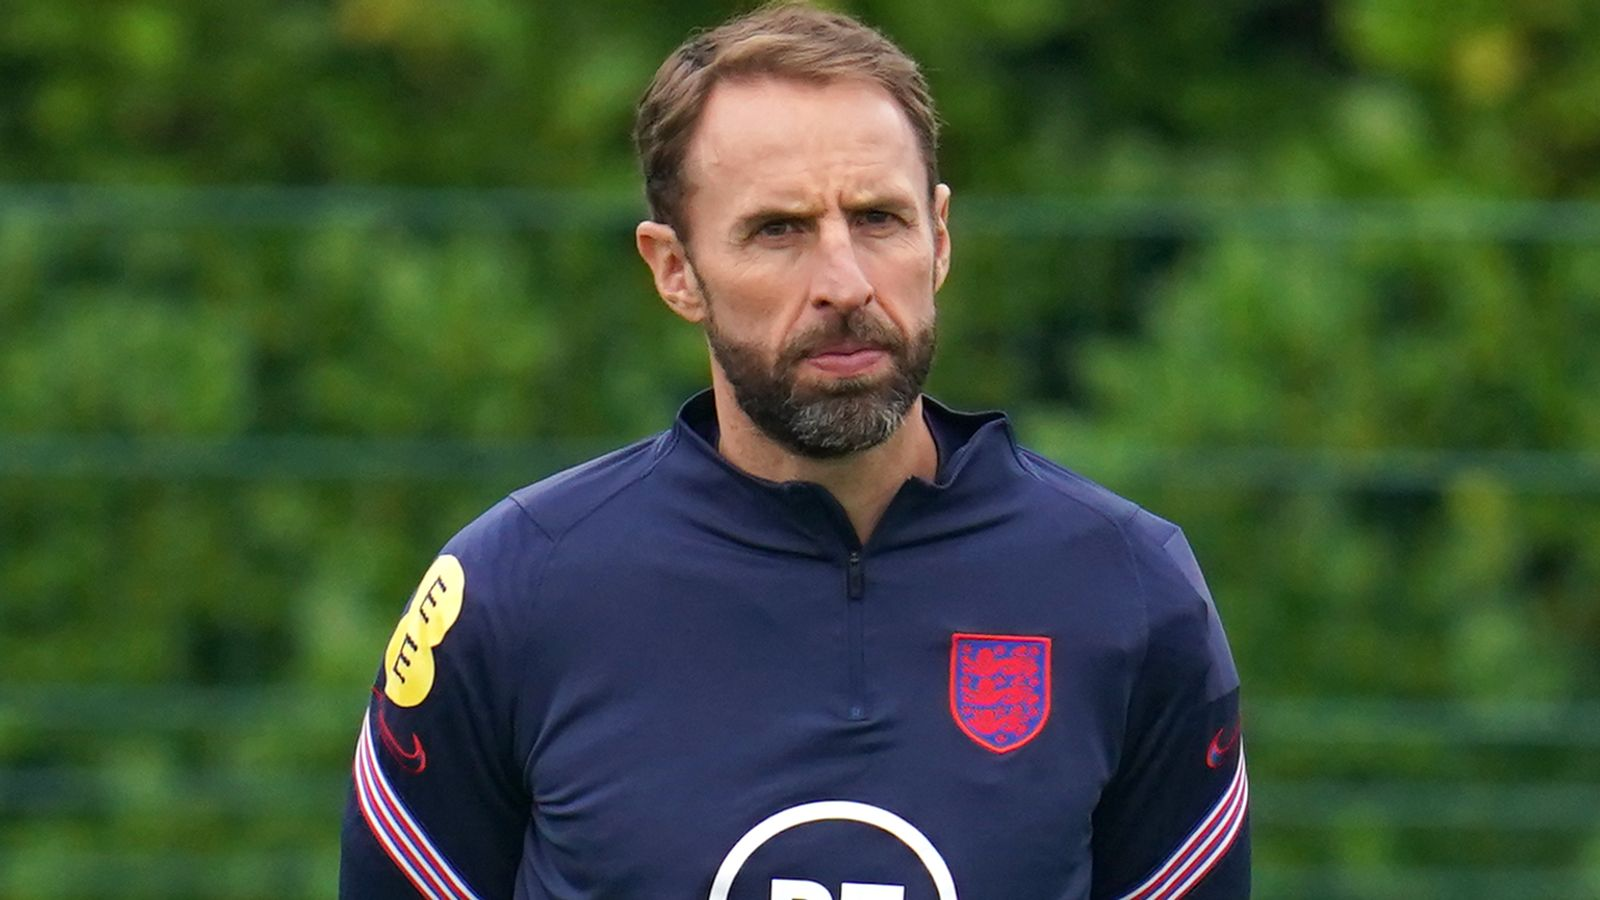 Gareth Southgate: England coach says some players being swayed by Covid-19 vaccination conspiracy theories